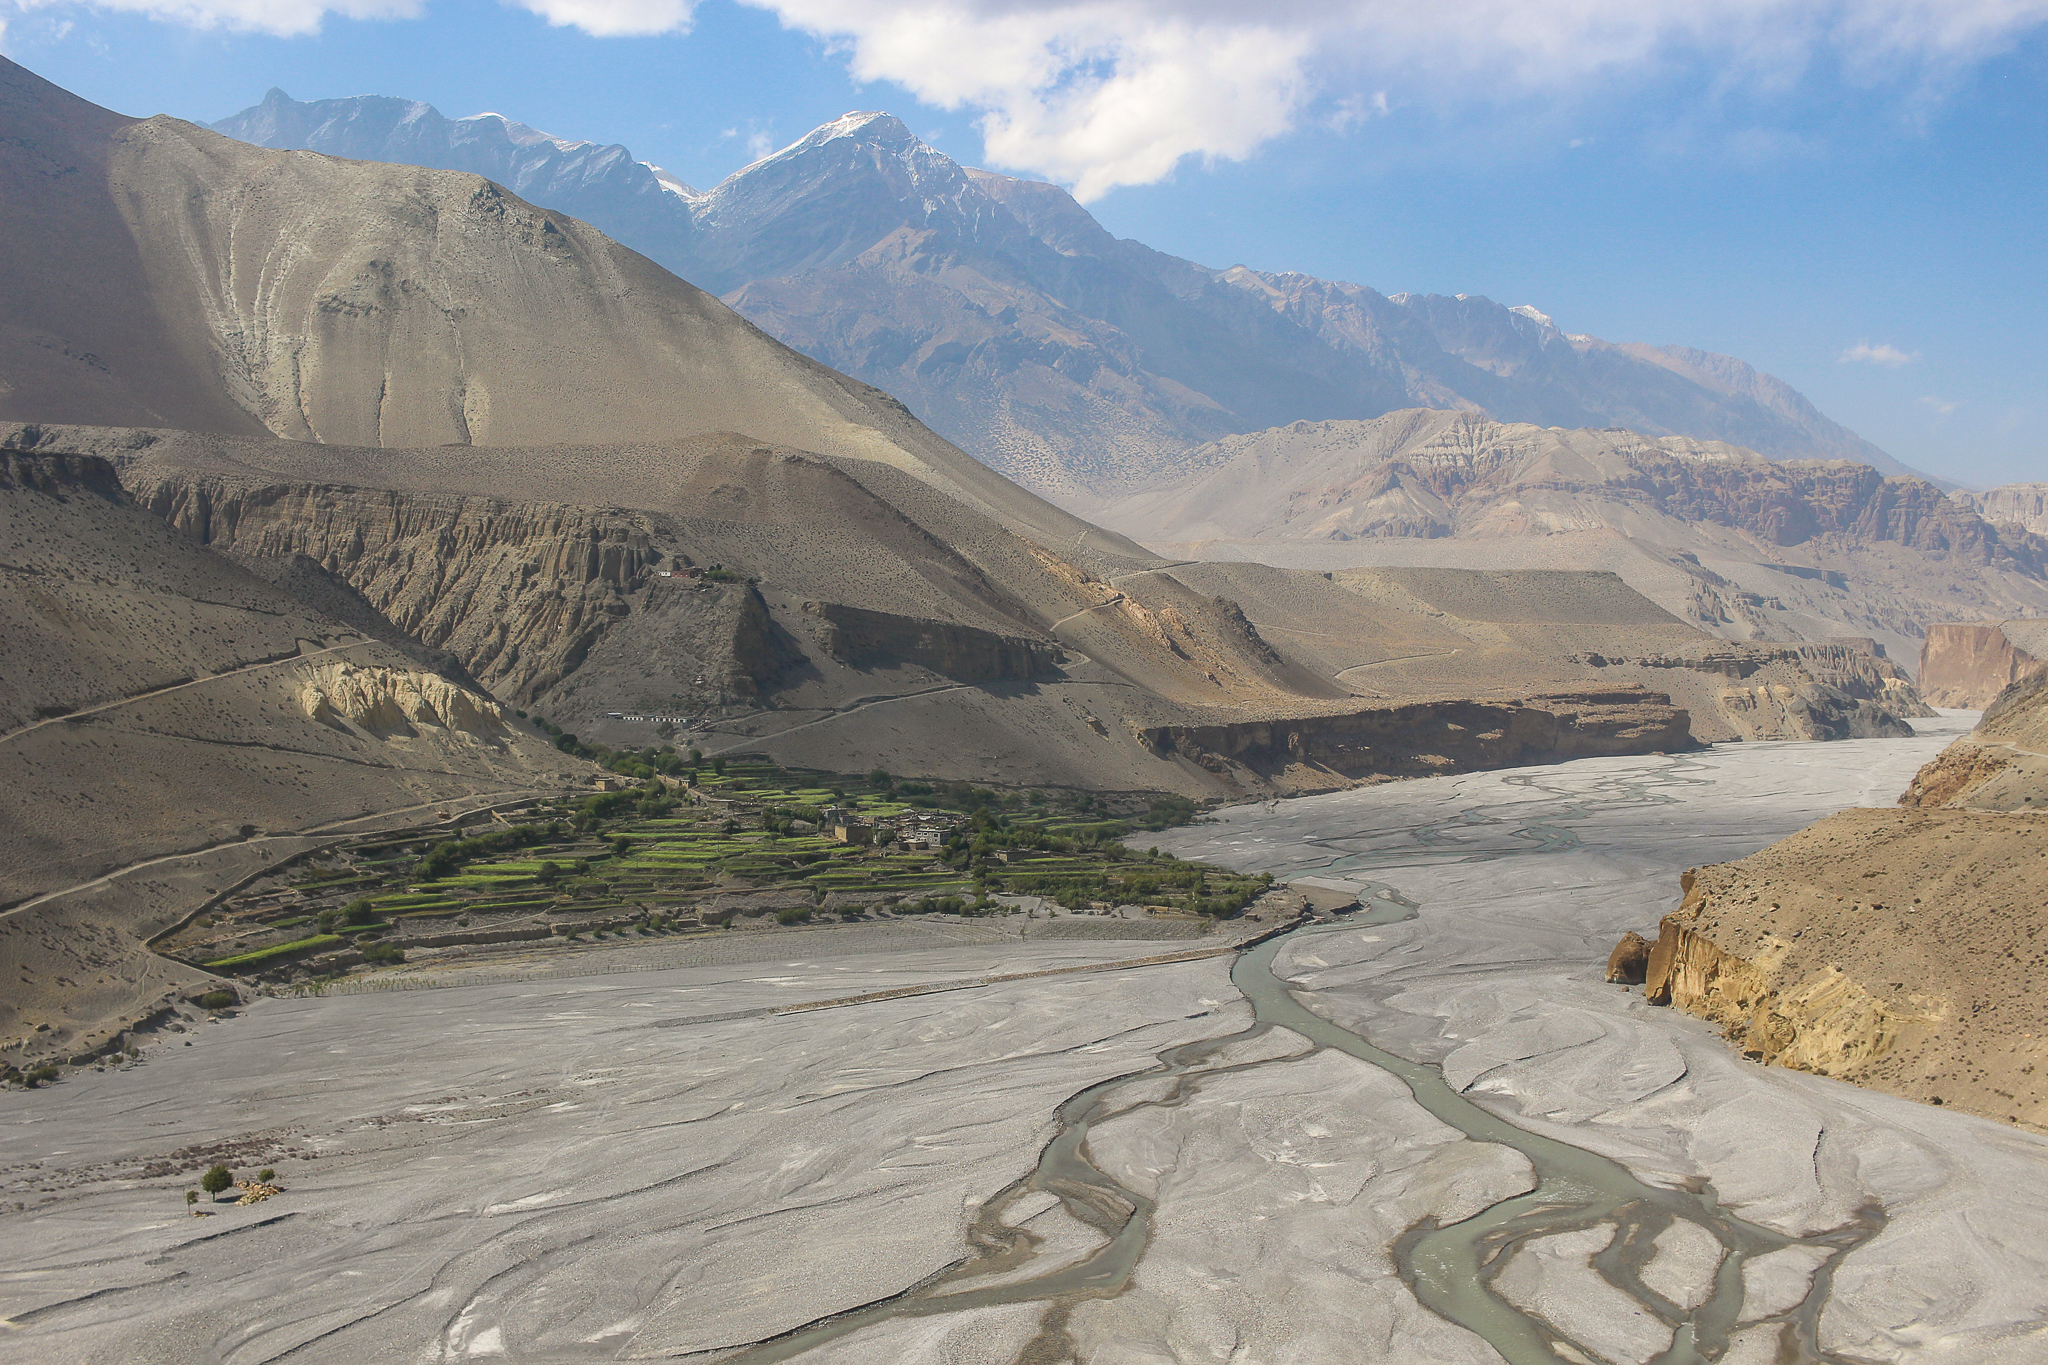 A little oasis called Tiri in Upper Mustang, which you can reach by walking along the Kali Gandaki river basin